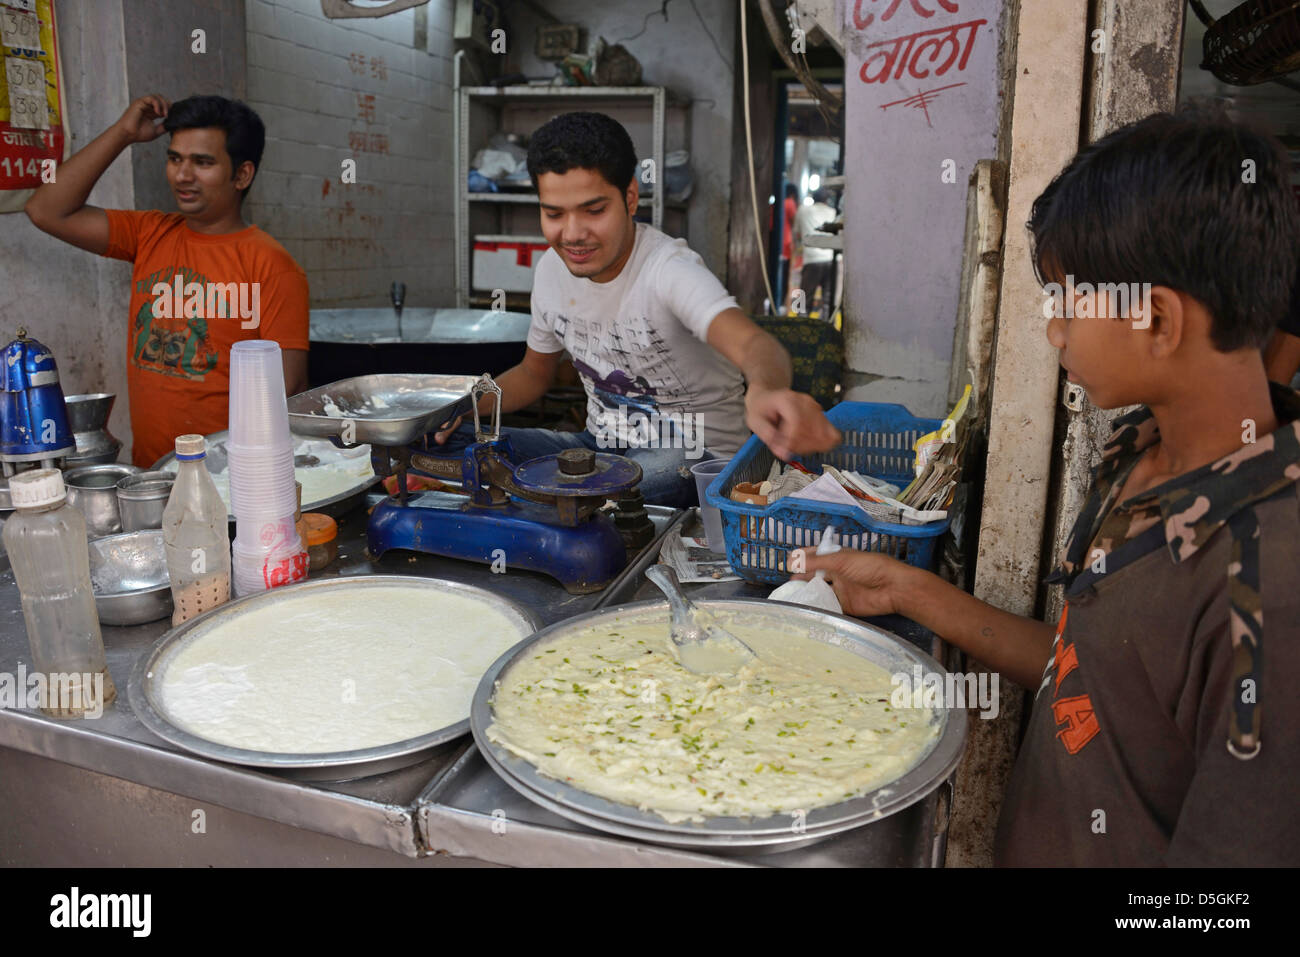 Indian fast food service in Chandni Chowk, Old Delhi, India - Stock Image